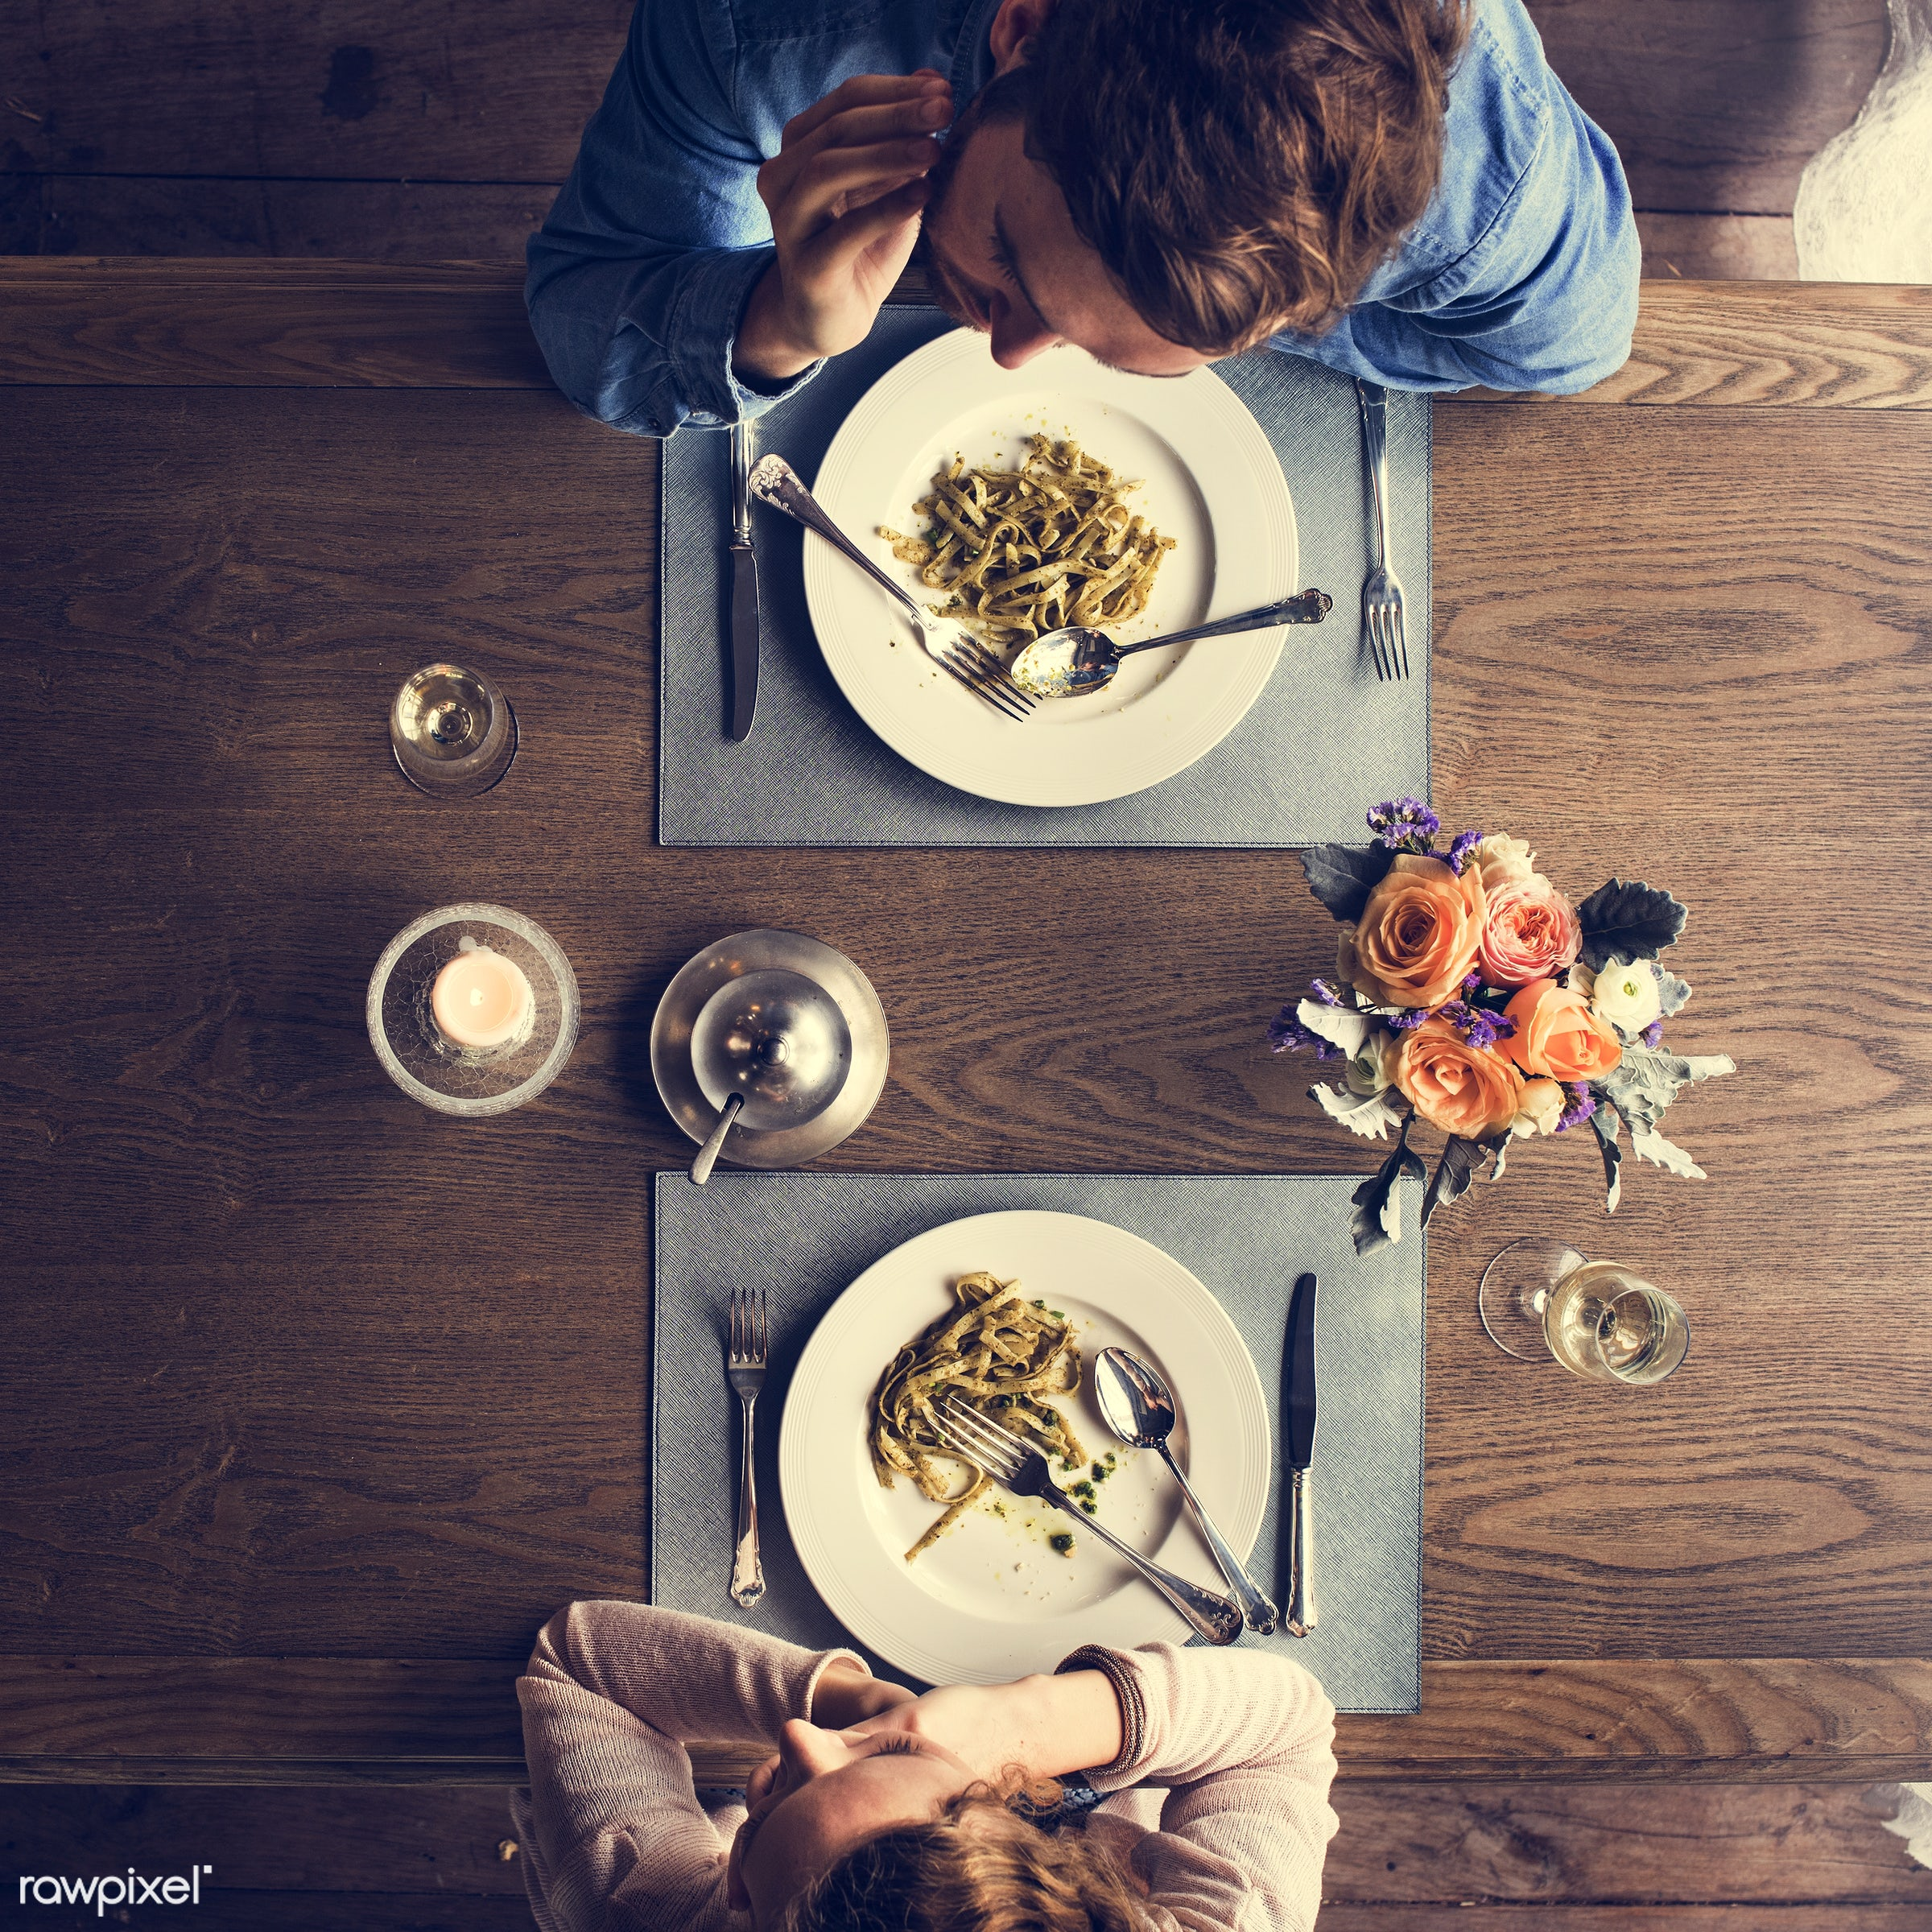 expression, person, people, together, caucasian, love, woman, gather, drink, candles, lunch, cheerful, flower, wine, hold,...